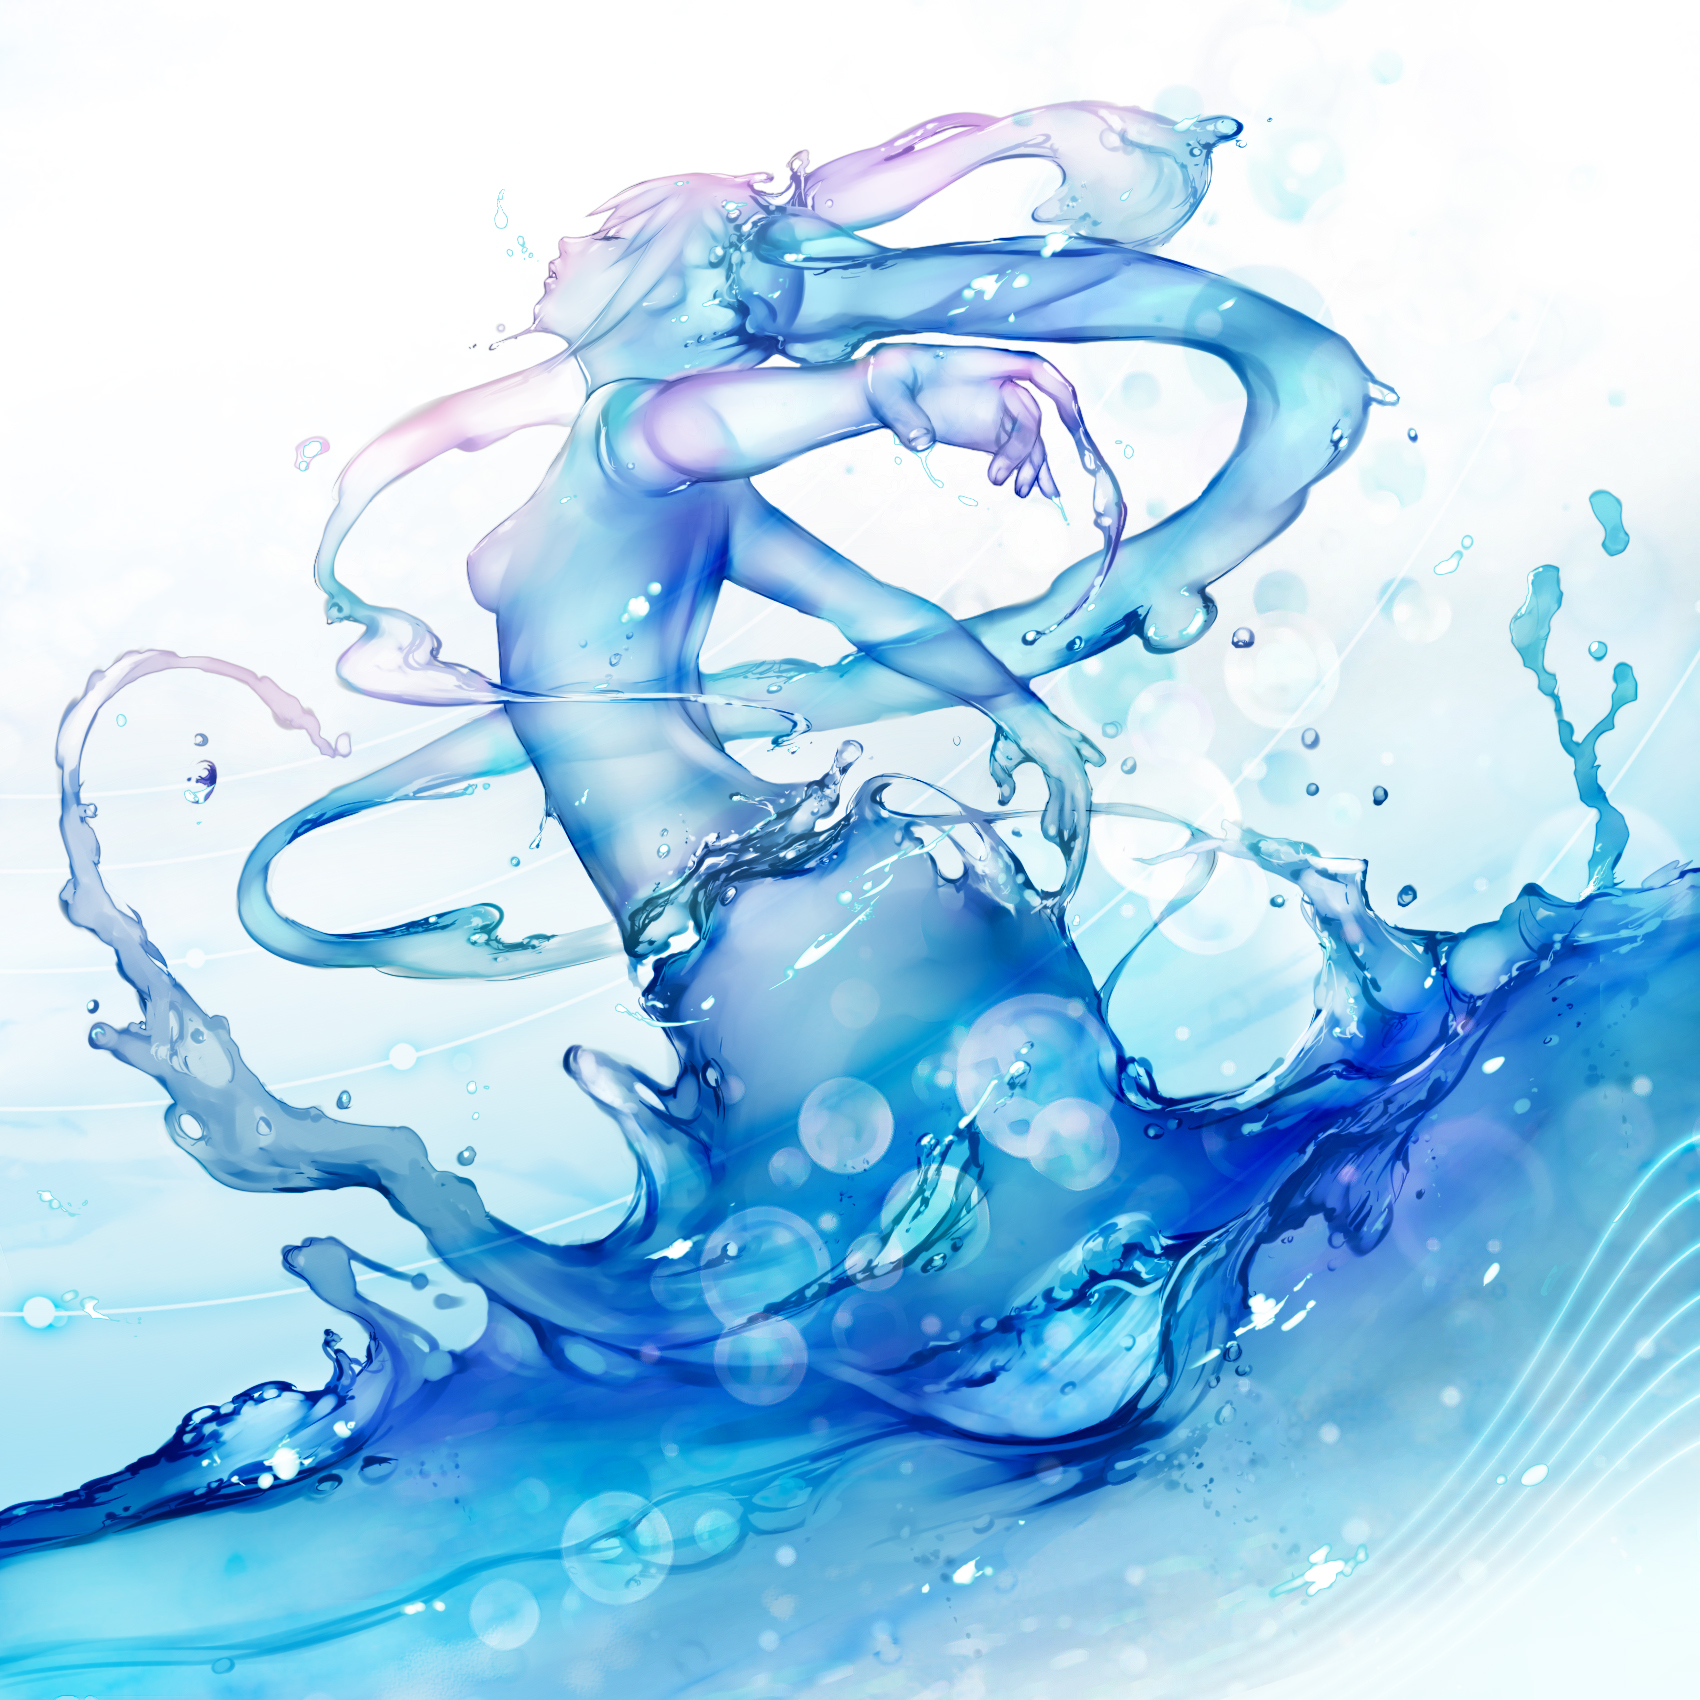 Amazing, exquisite, ecstatic blue liquid girl